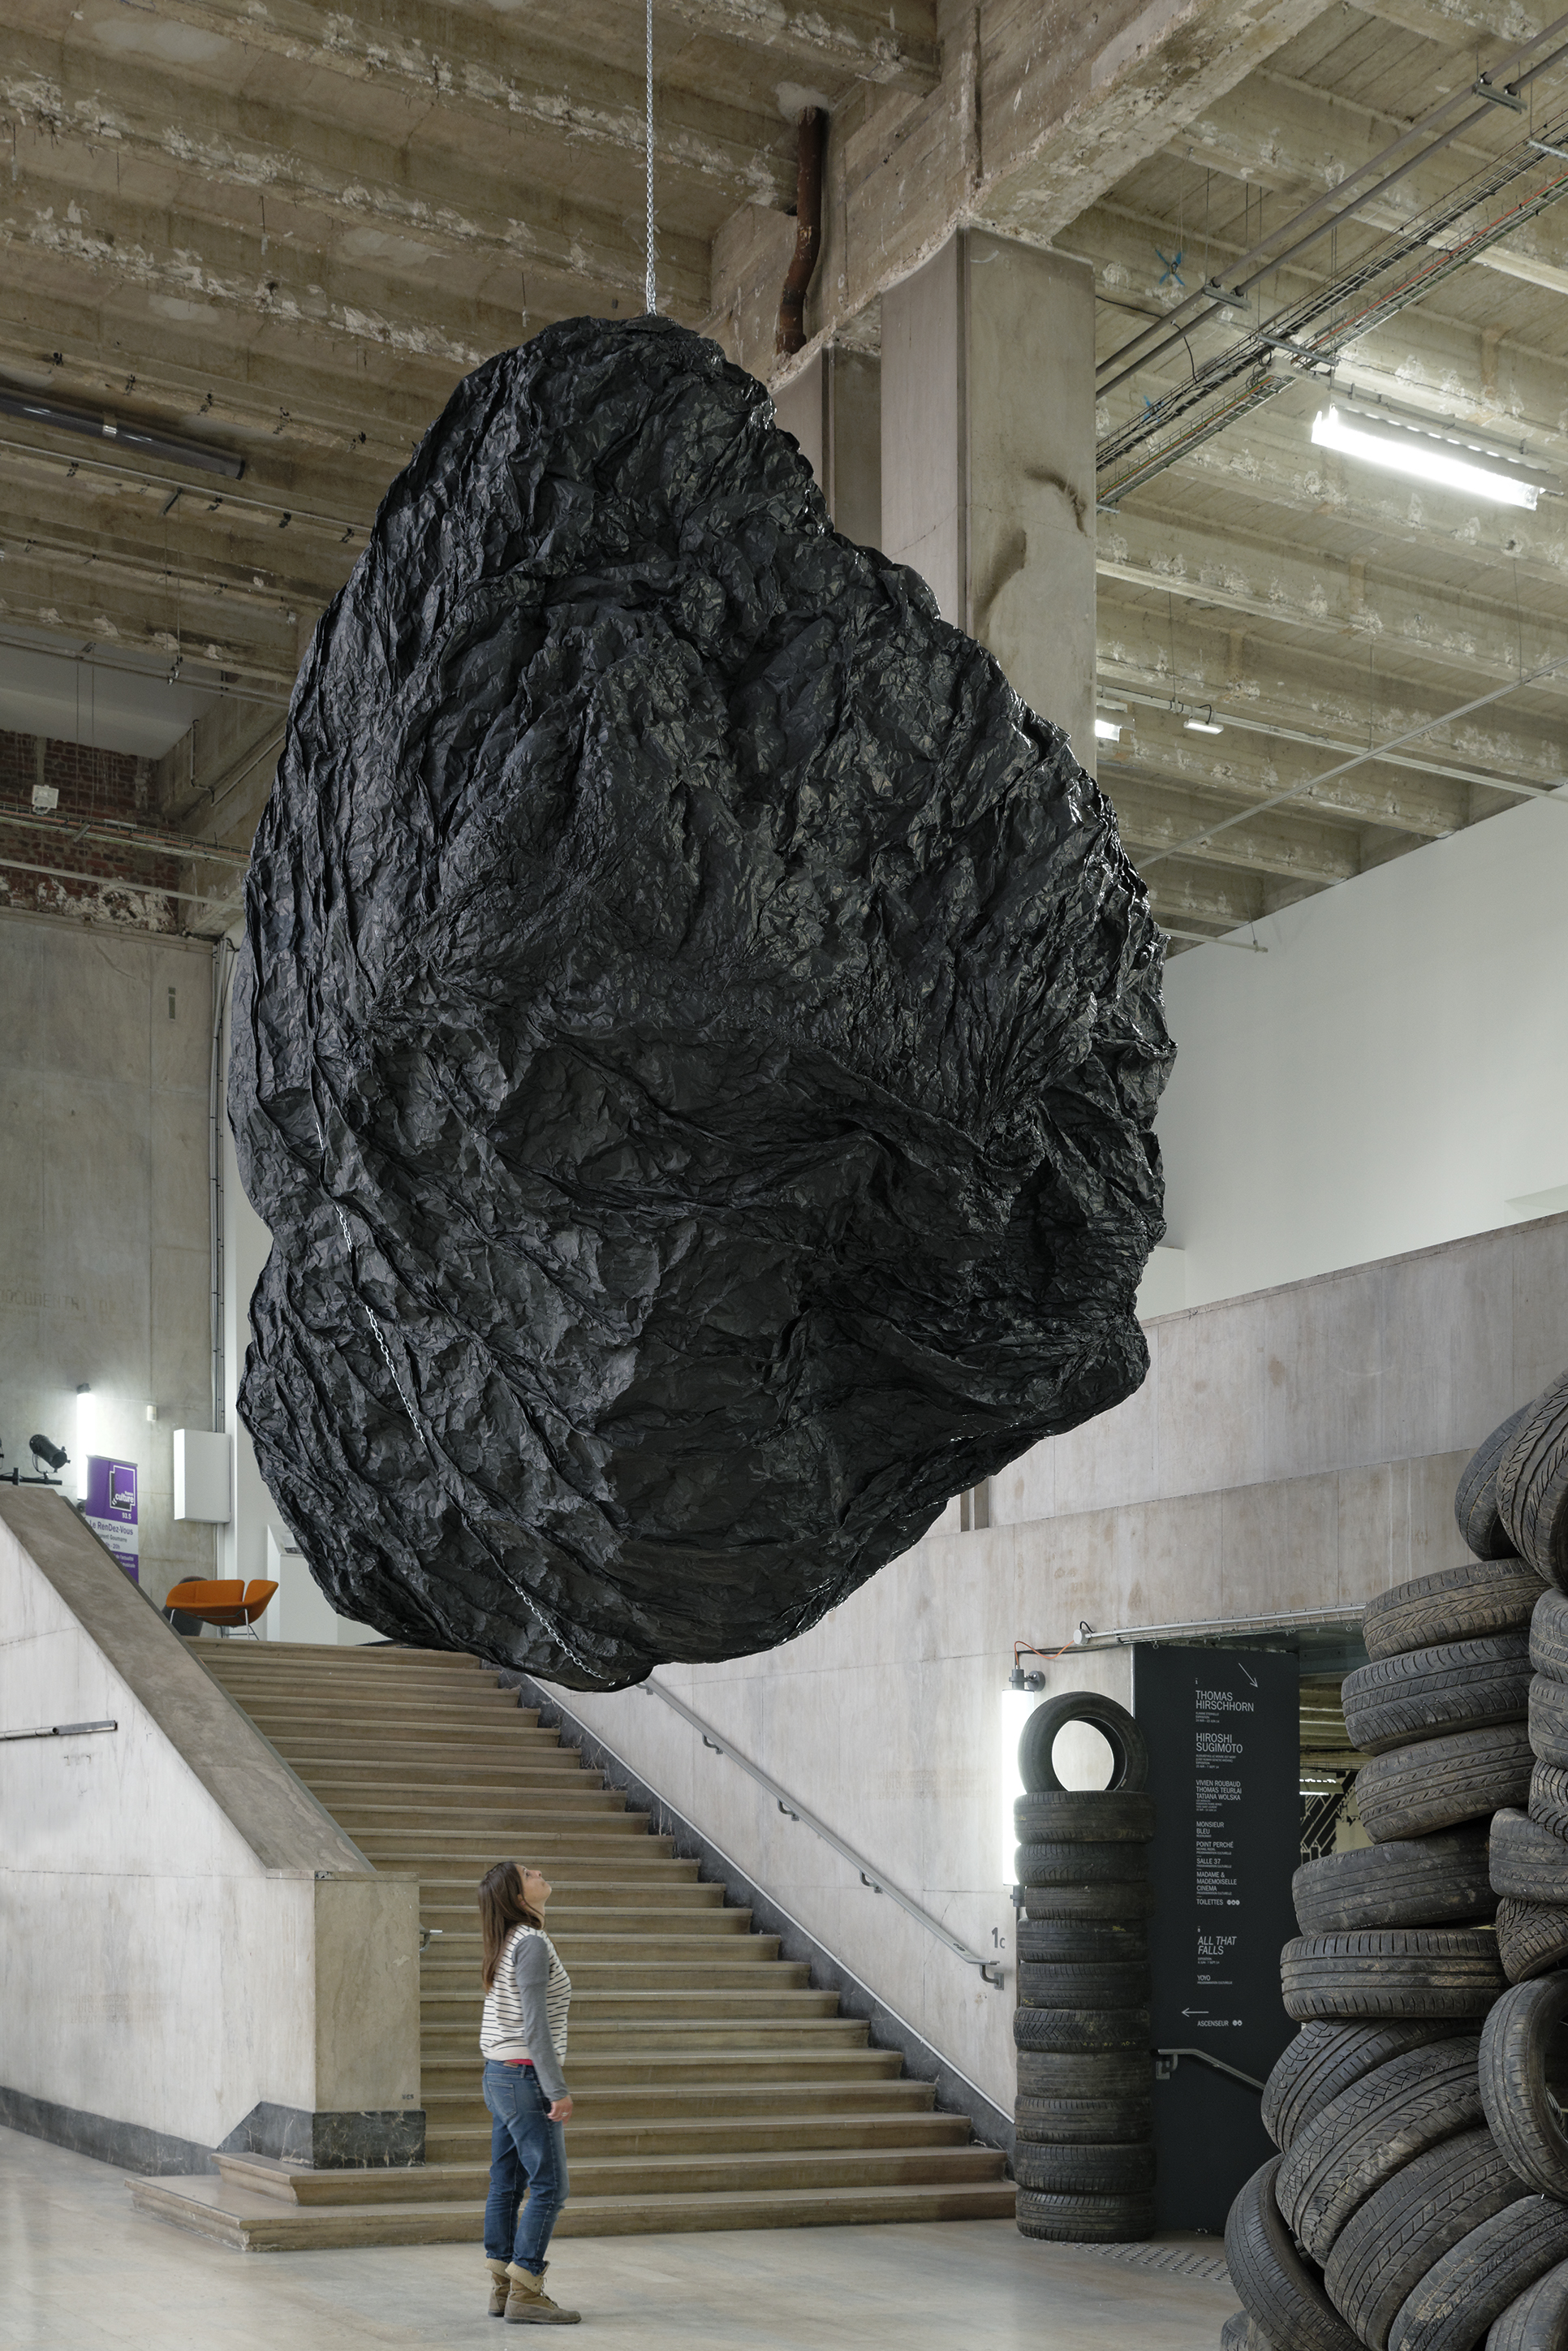 Teoria [Goliath's Head], 2014 ©Eduardo Basualdo